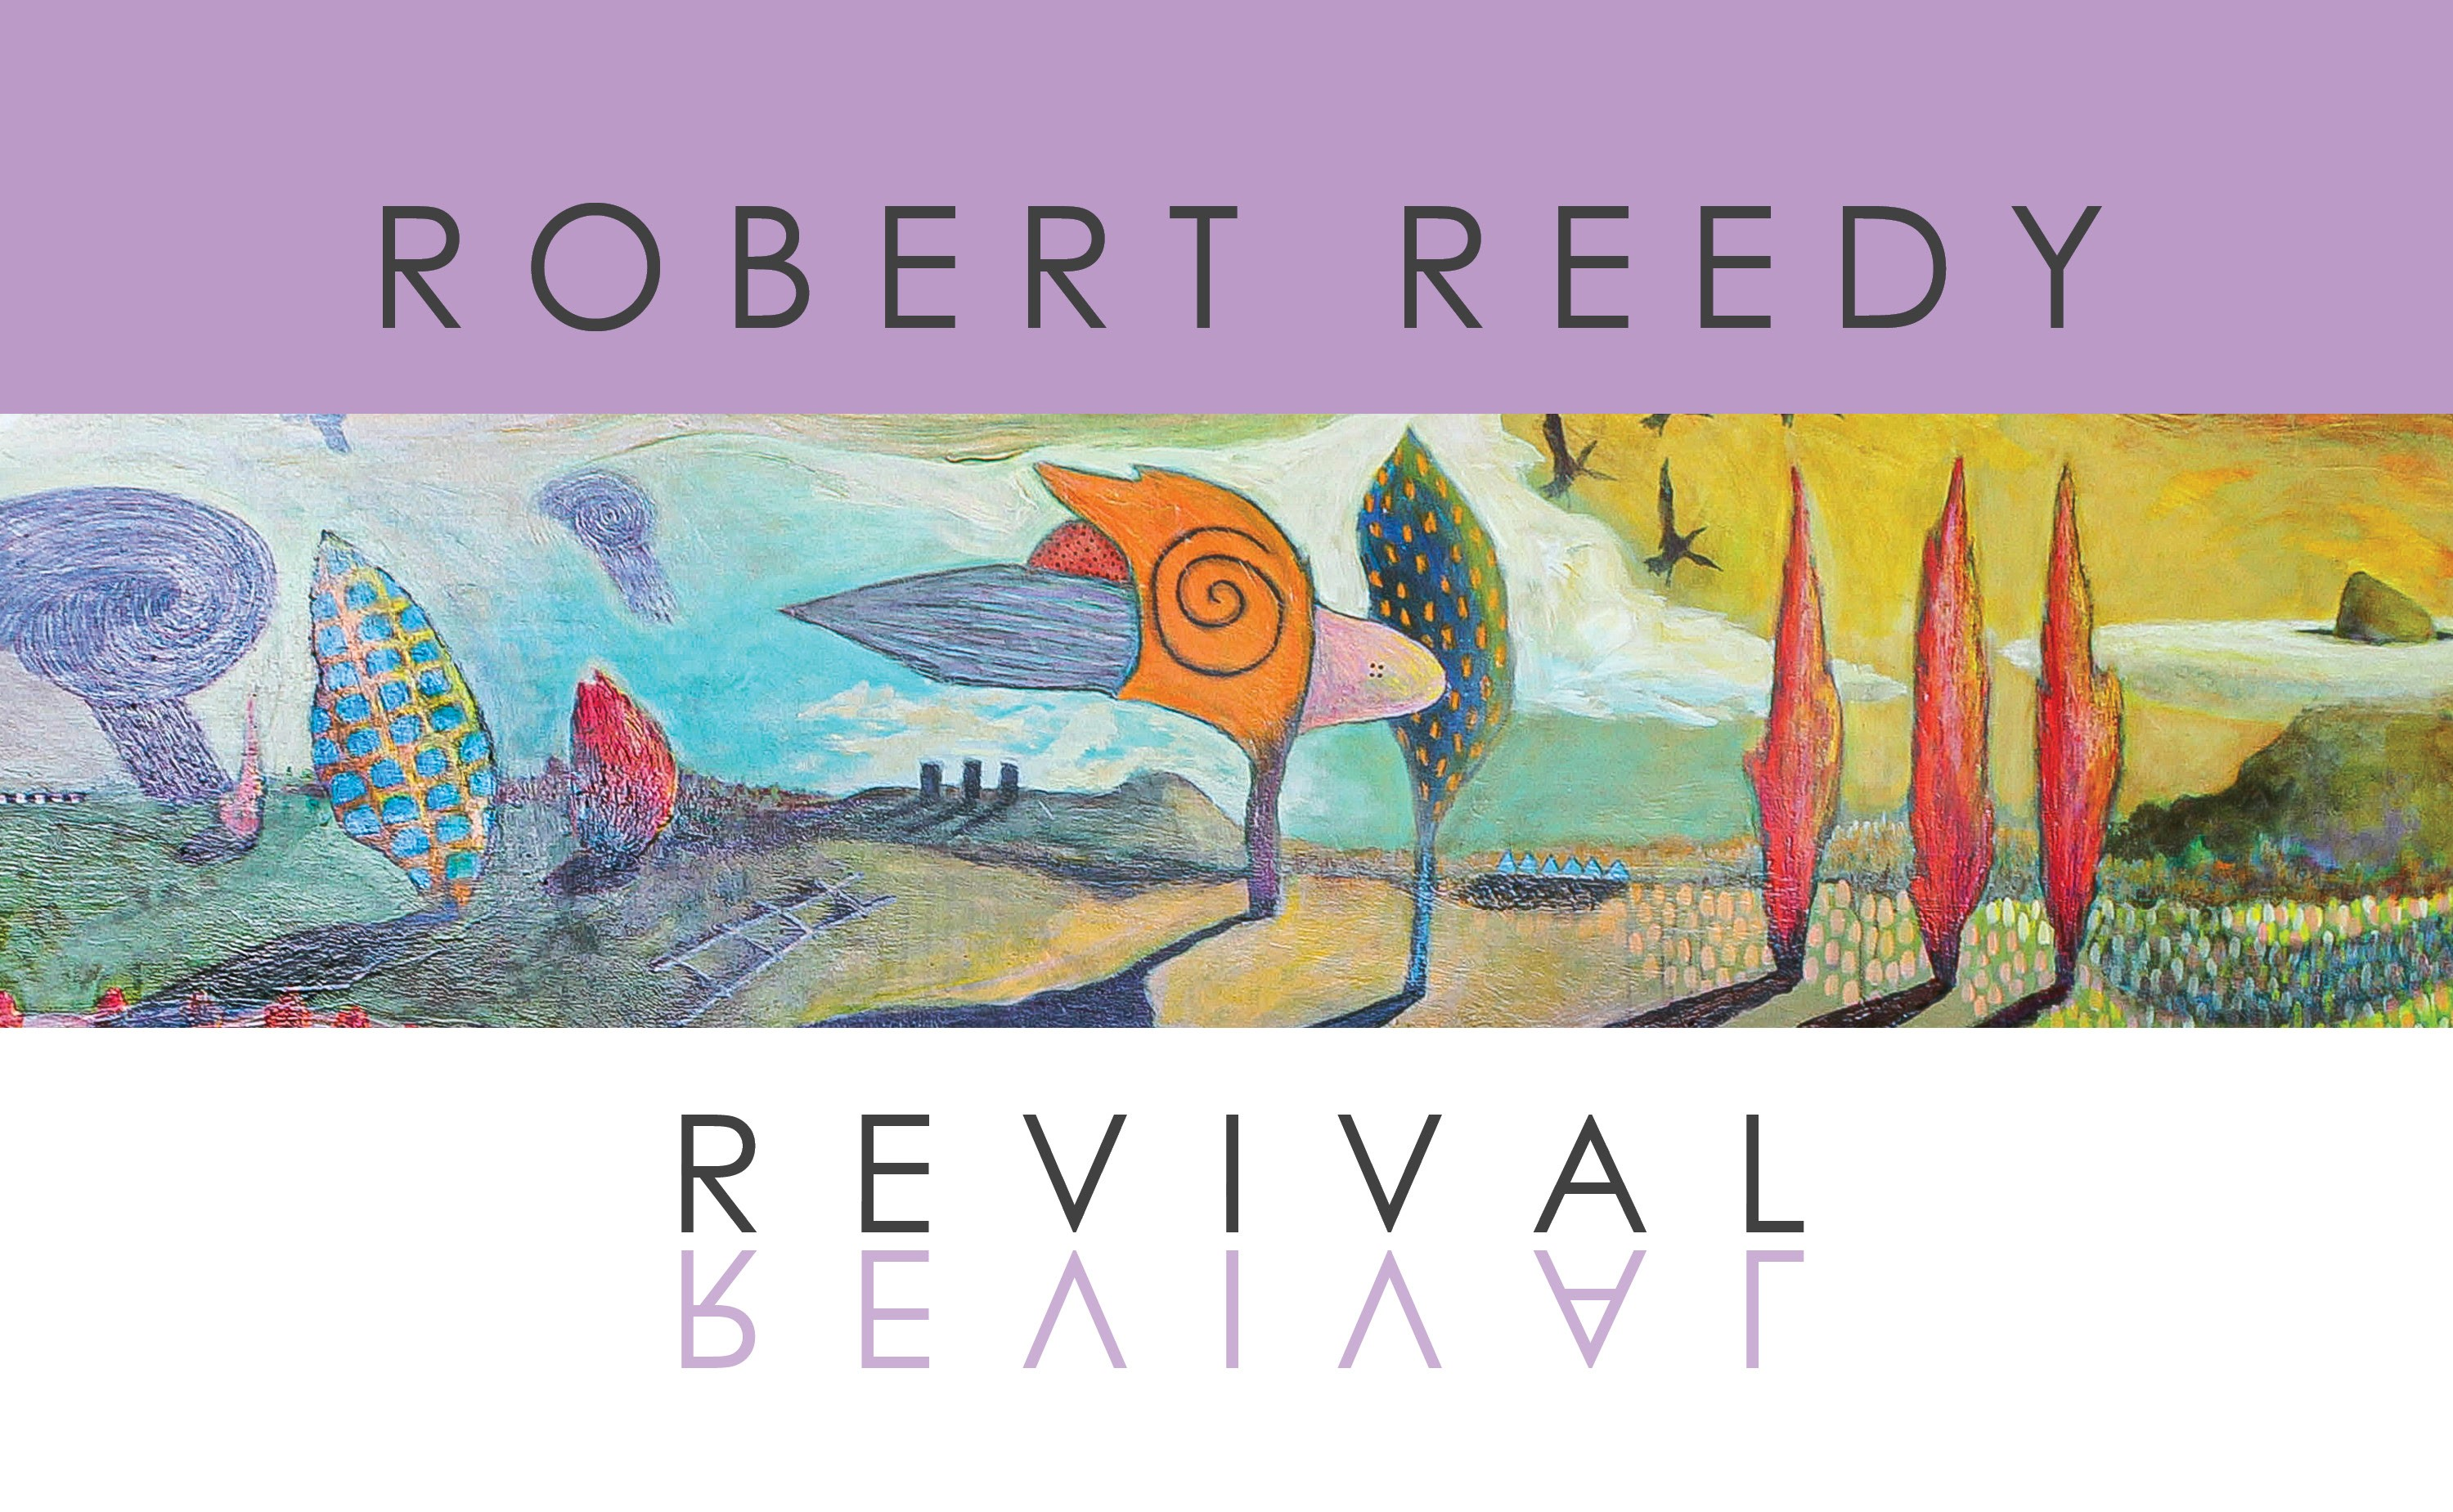 Robert Reedy: Revival